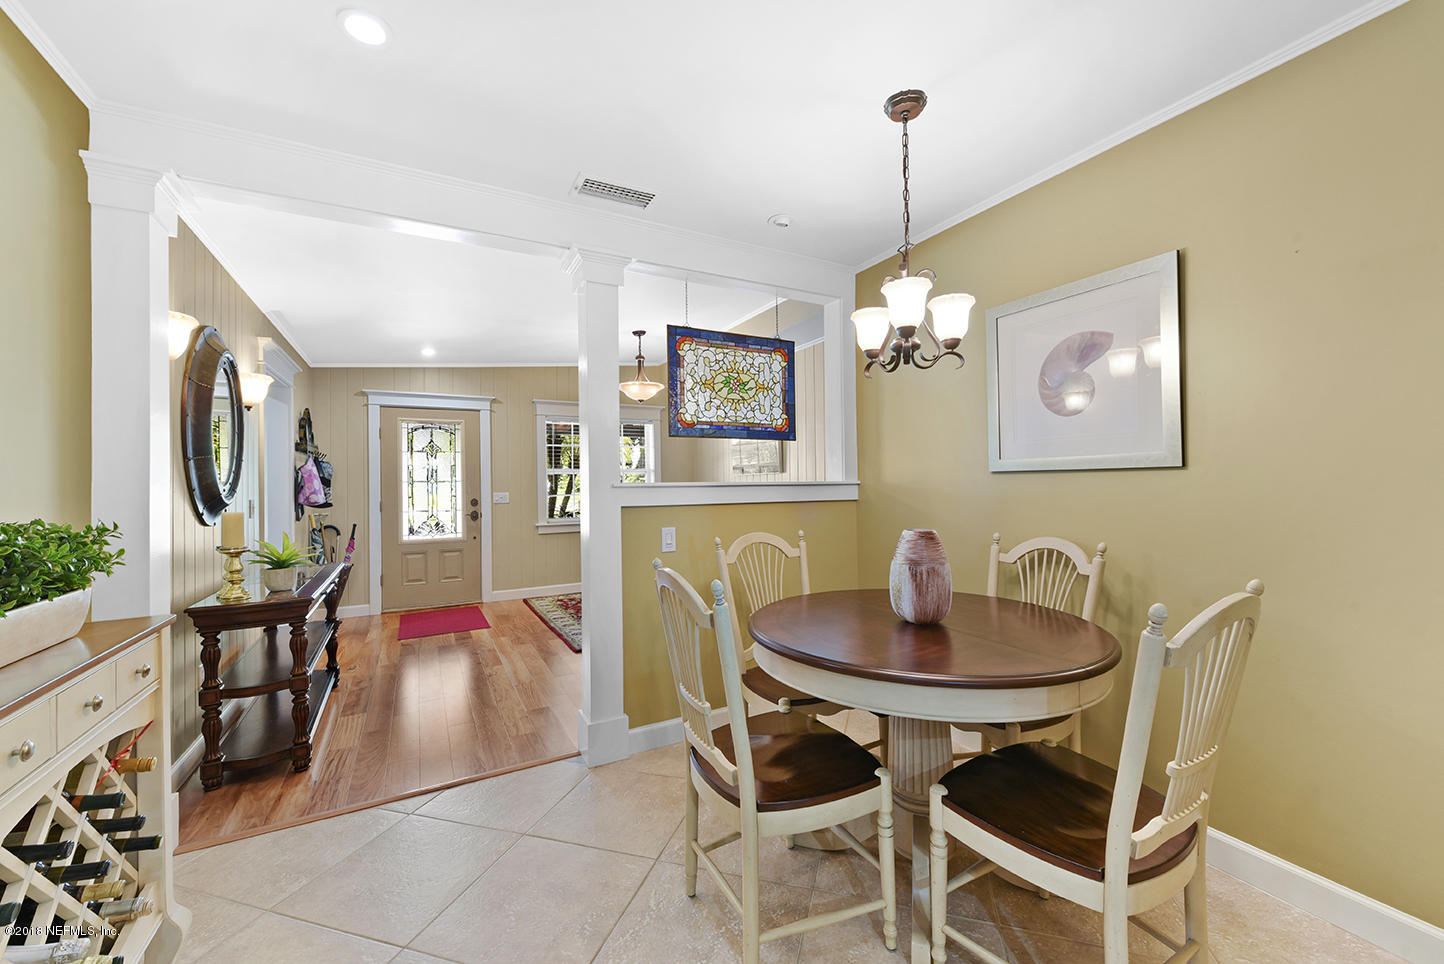 1257 COUNTY ROAD 13, ST AUGUSTINE, FLORIDA 32092, 3 Bedrooms Bedrooms, ,2 BathroomsBathrooms,Residential - single family,For sale,COUNTY ROAD 13,944969